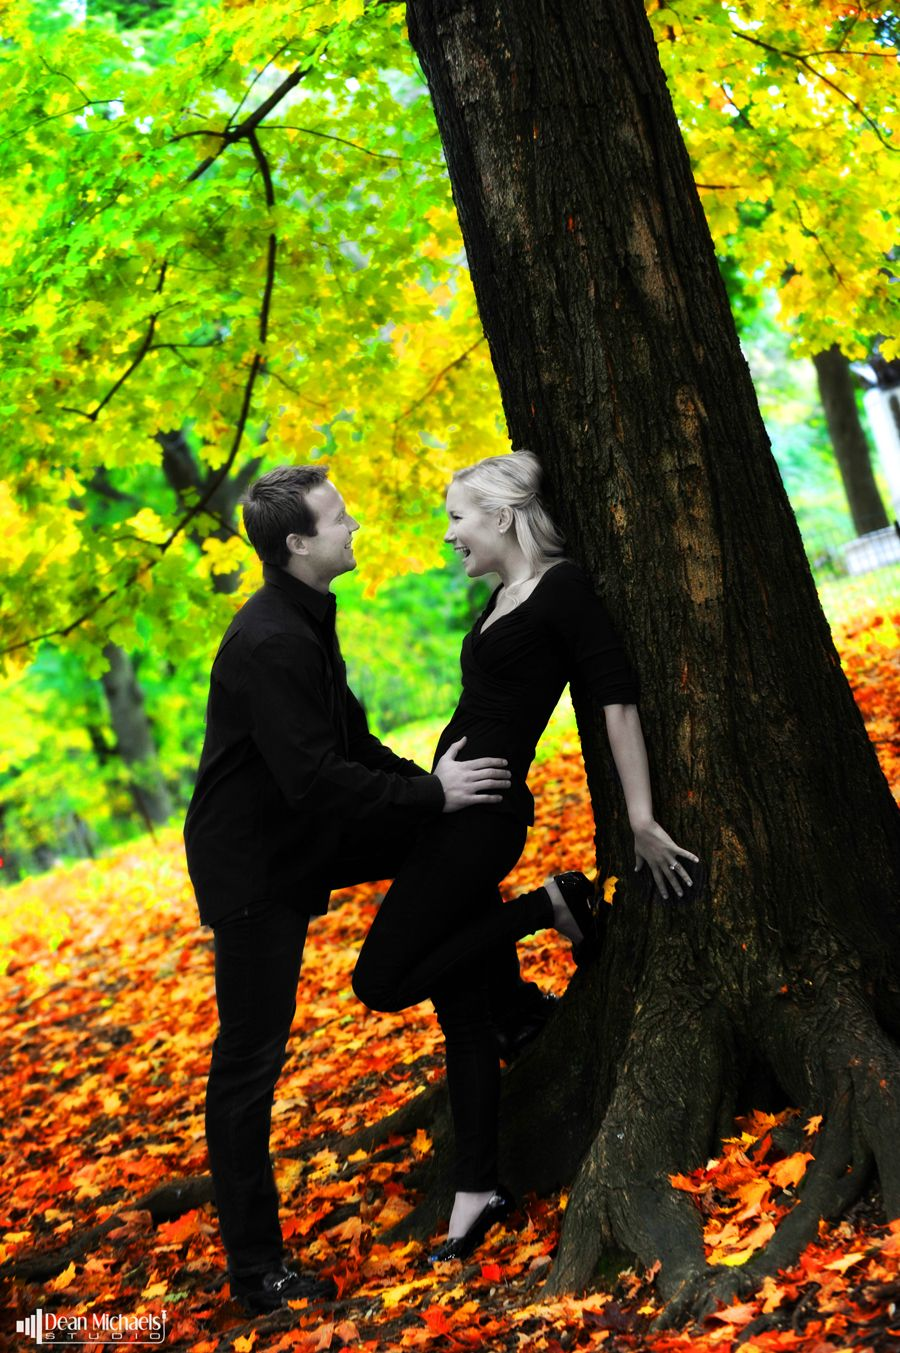 Chad and Kate's 2011 #engagement shoot in Central Park!  (courtesy of New Jersey #Engagement Photography - Dean Michaels Studio) #wedding #engaged